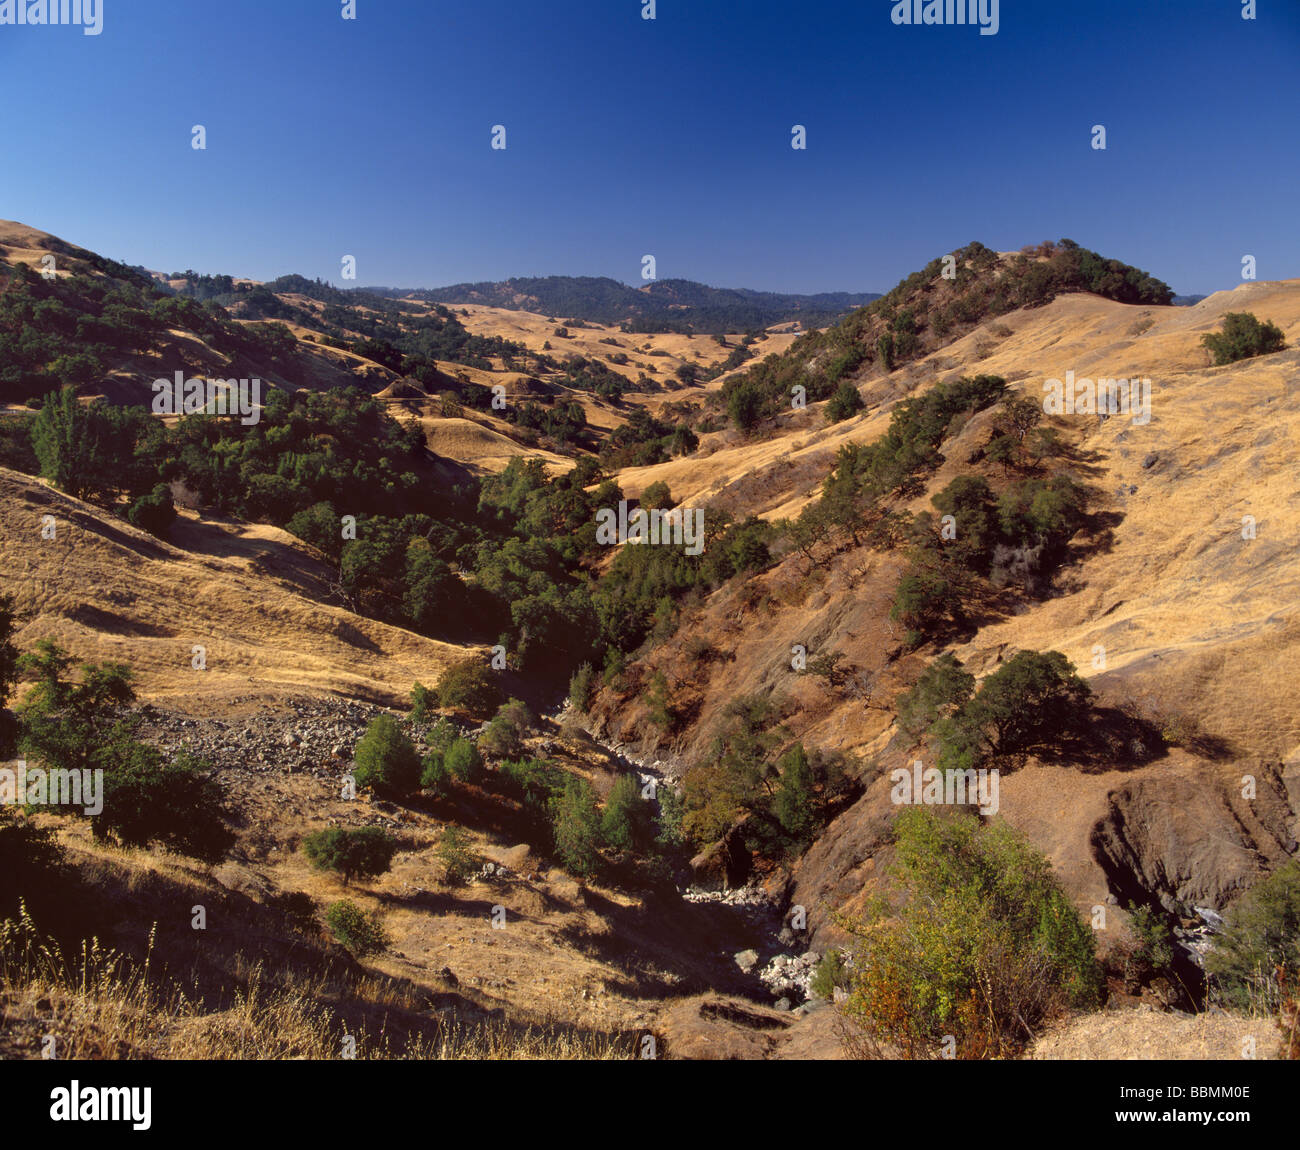 Head of the Anderson Valley Mendocino Co California - Stock Image